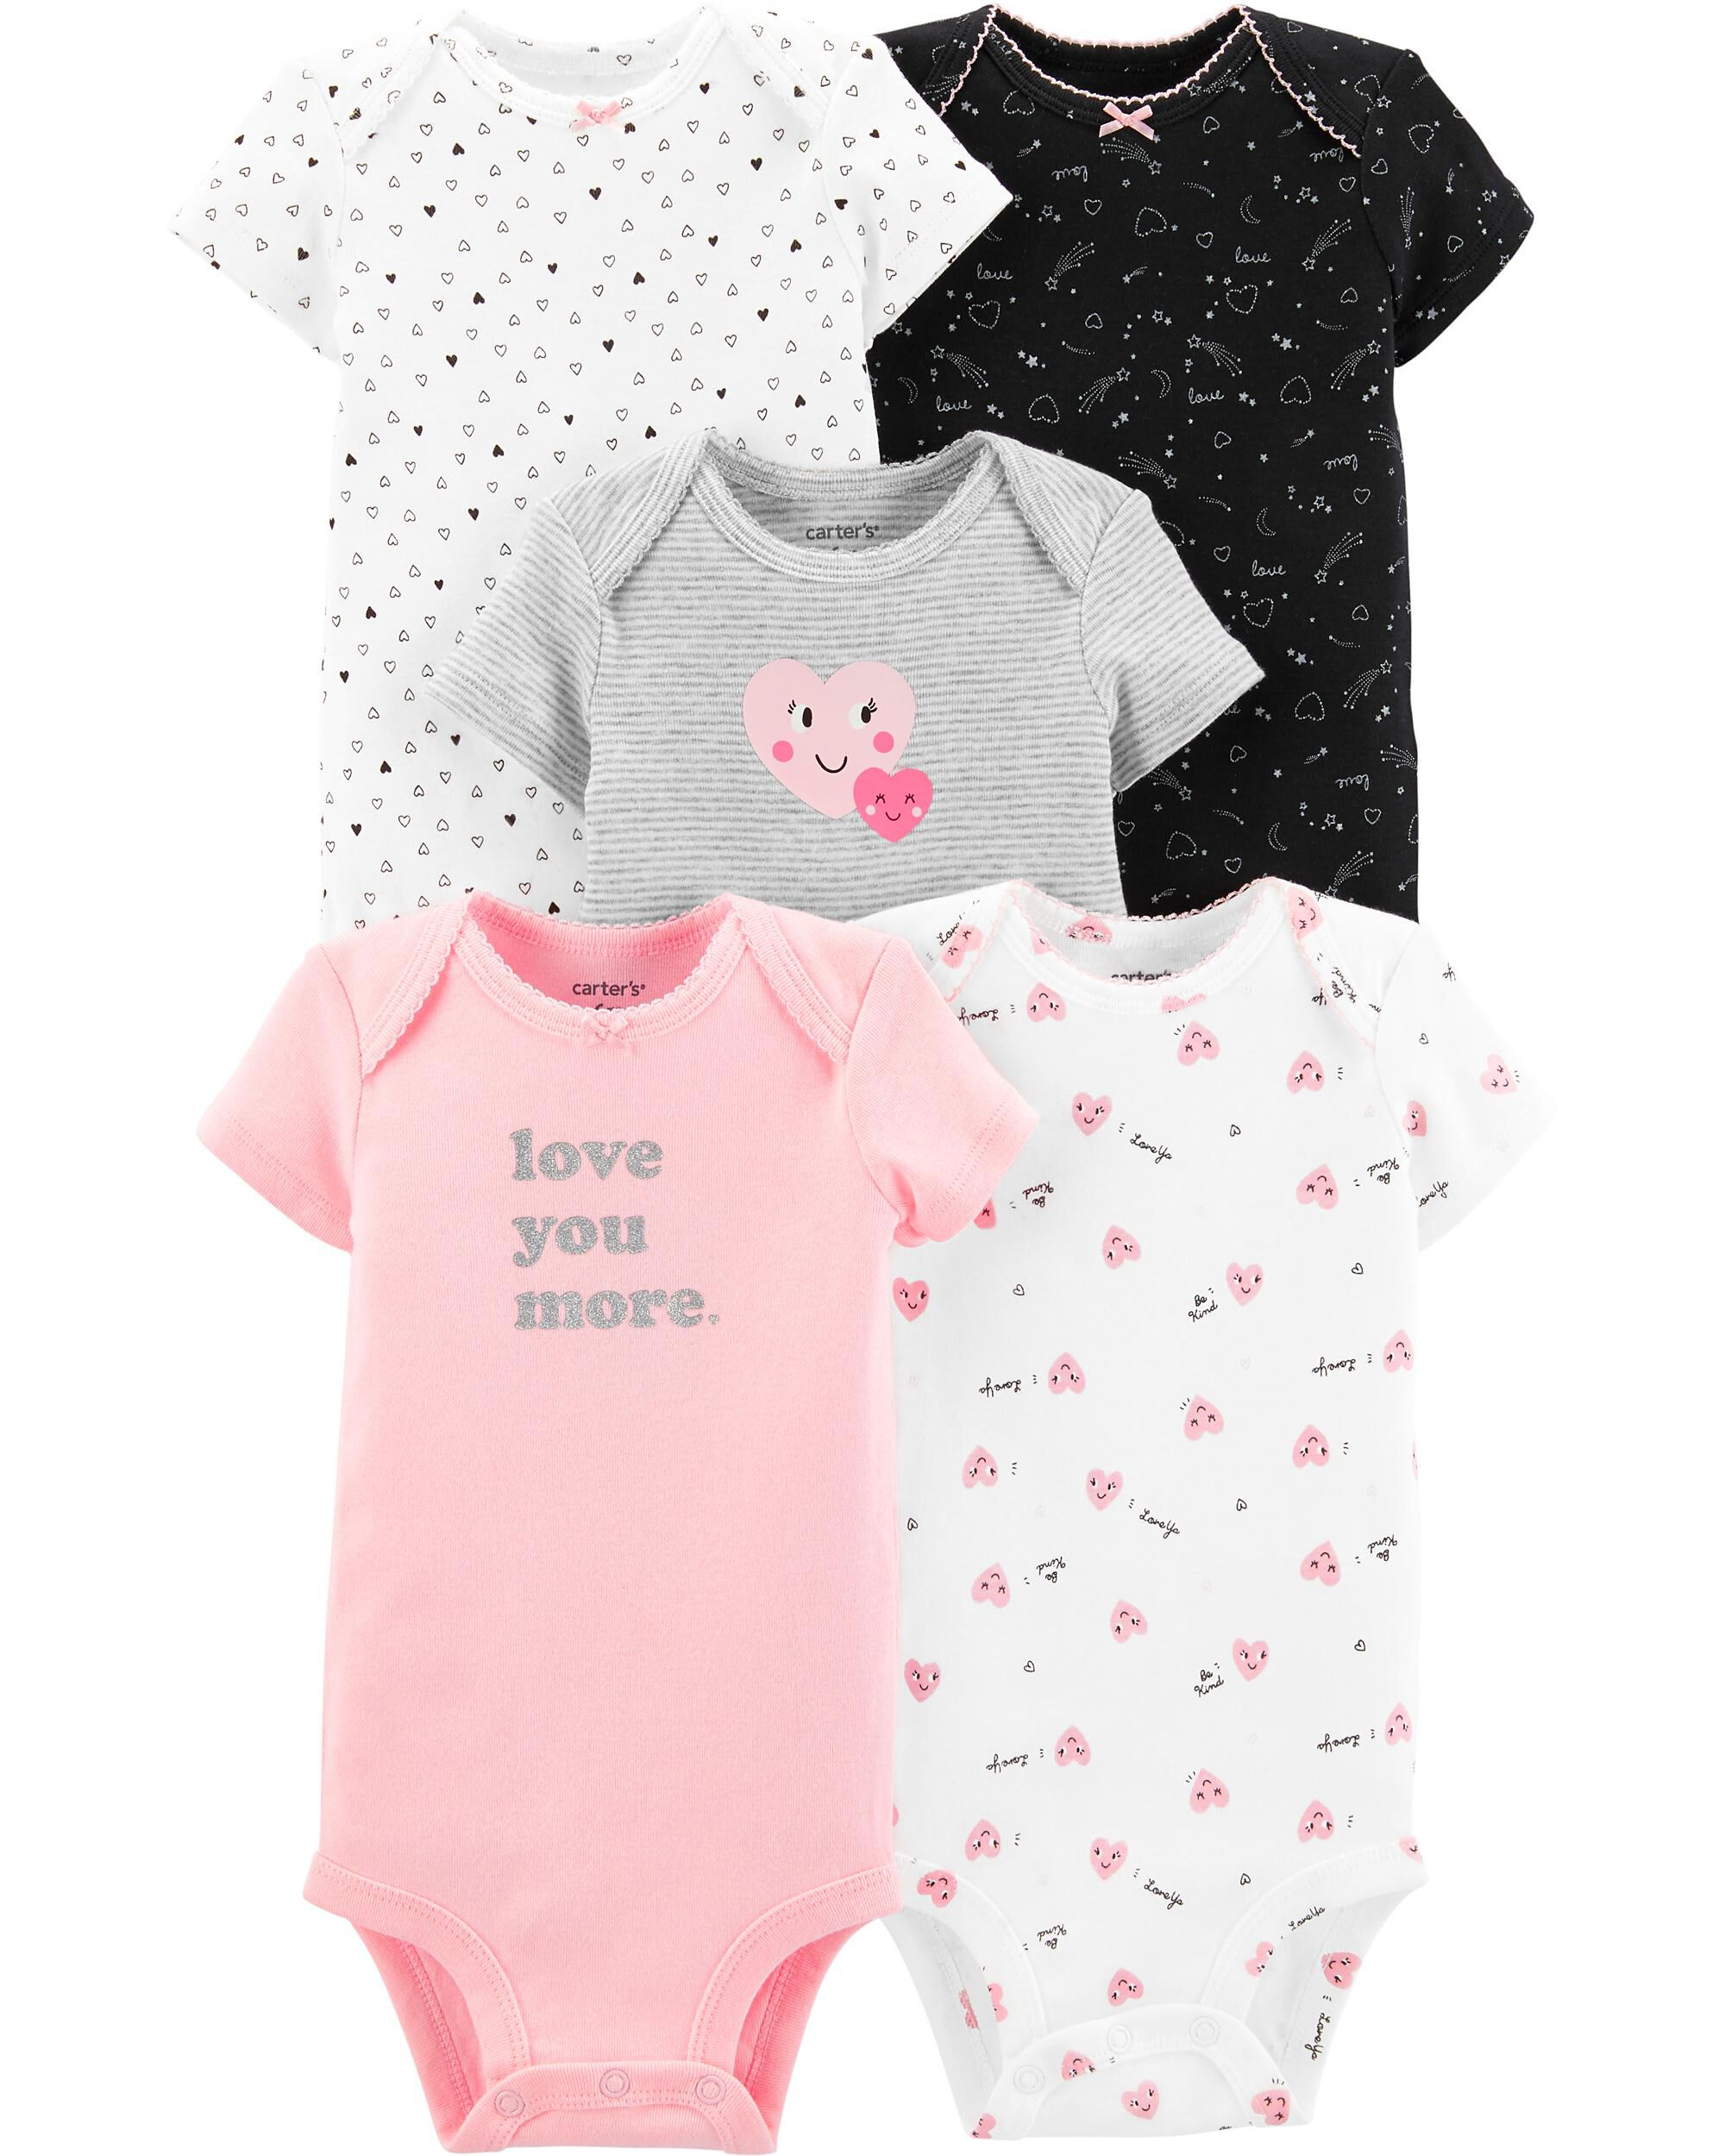 Hearty Baby Girls Next Up To 1 Month 100% Original Baby & Toddler Clothing Girls' Clothing (newborn-5t)